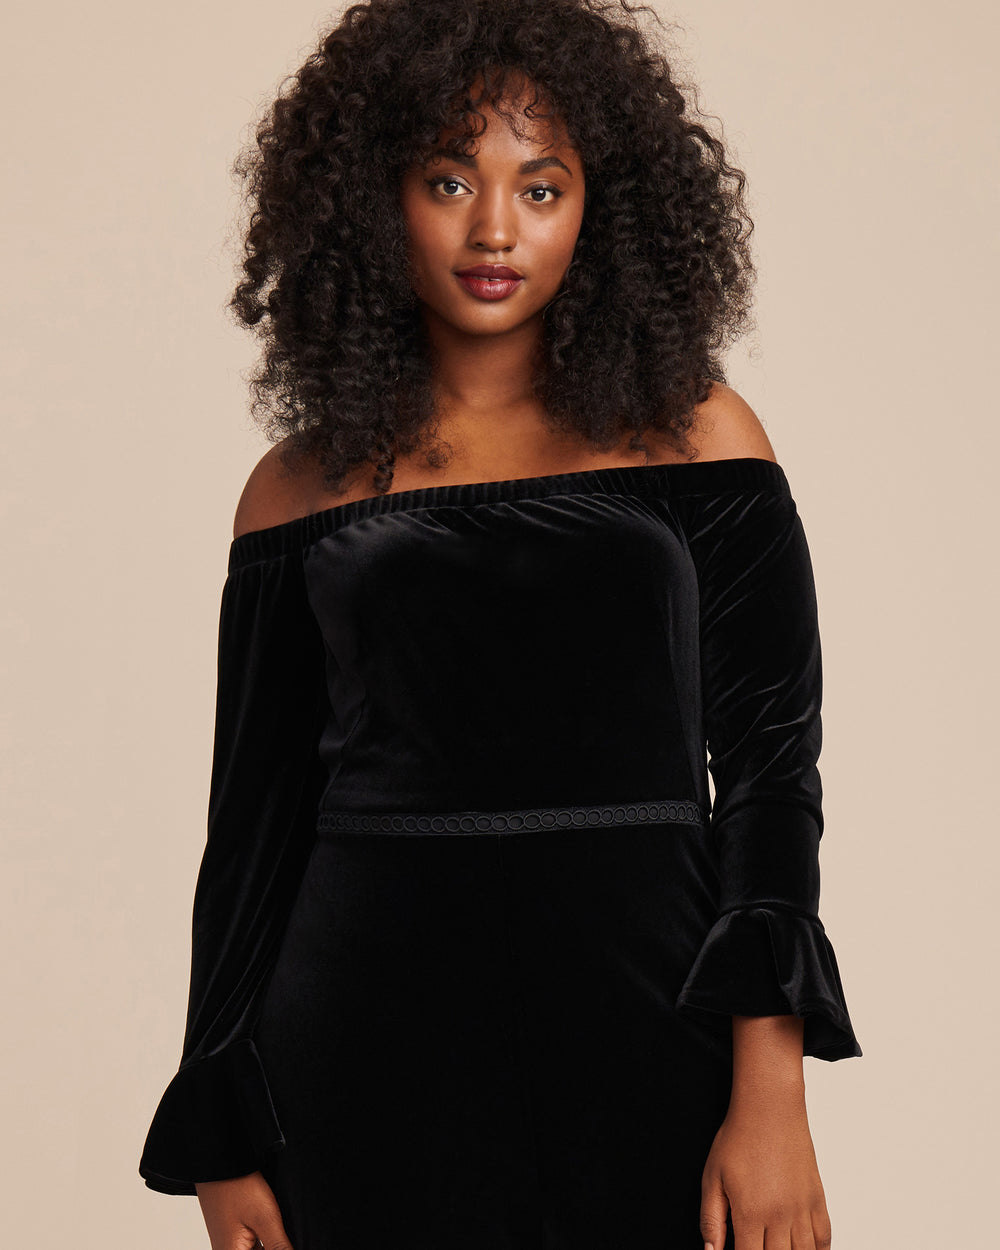 Ml Monique Lhuillier Black Stretch Velvet Off Shoulder Jumpsuit 11